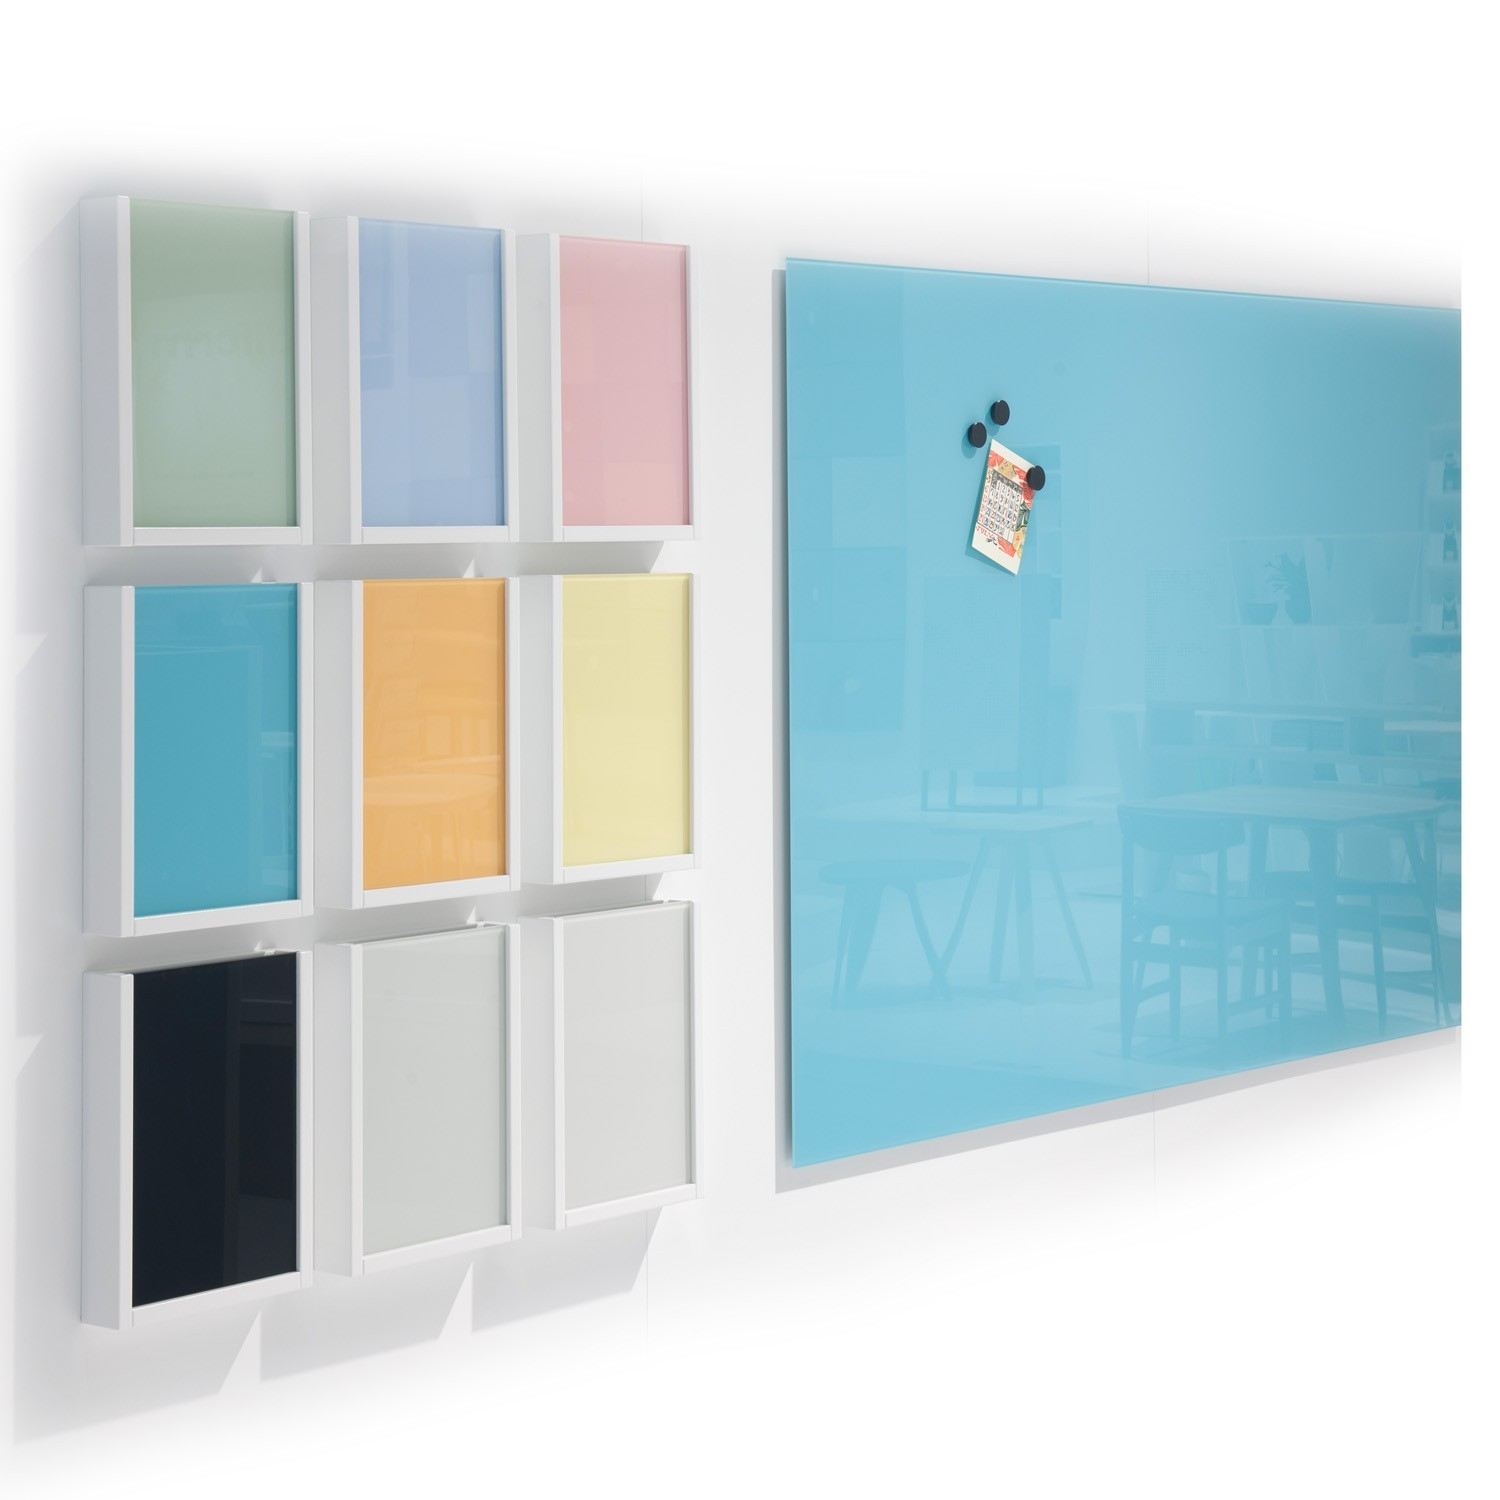 Magvision Glass Writing Boards Abstracta Glass Boards Apres Regarding Coloured Glass Shelves (Image 10 of 15)